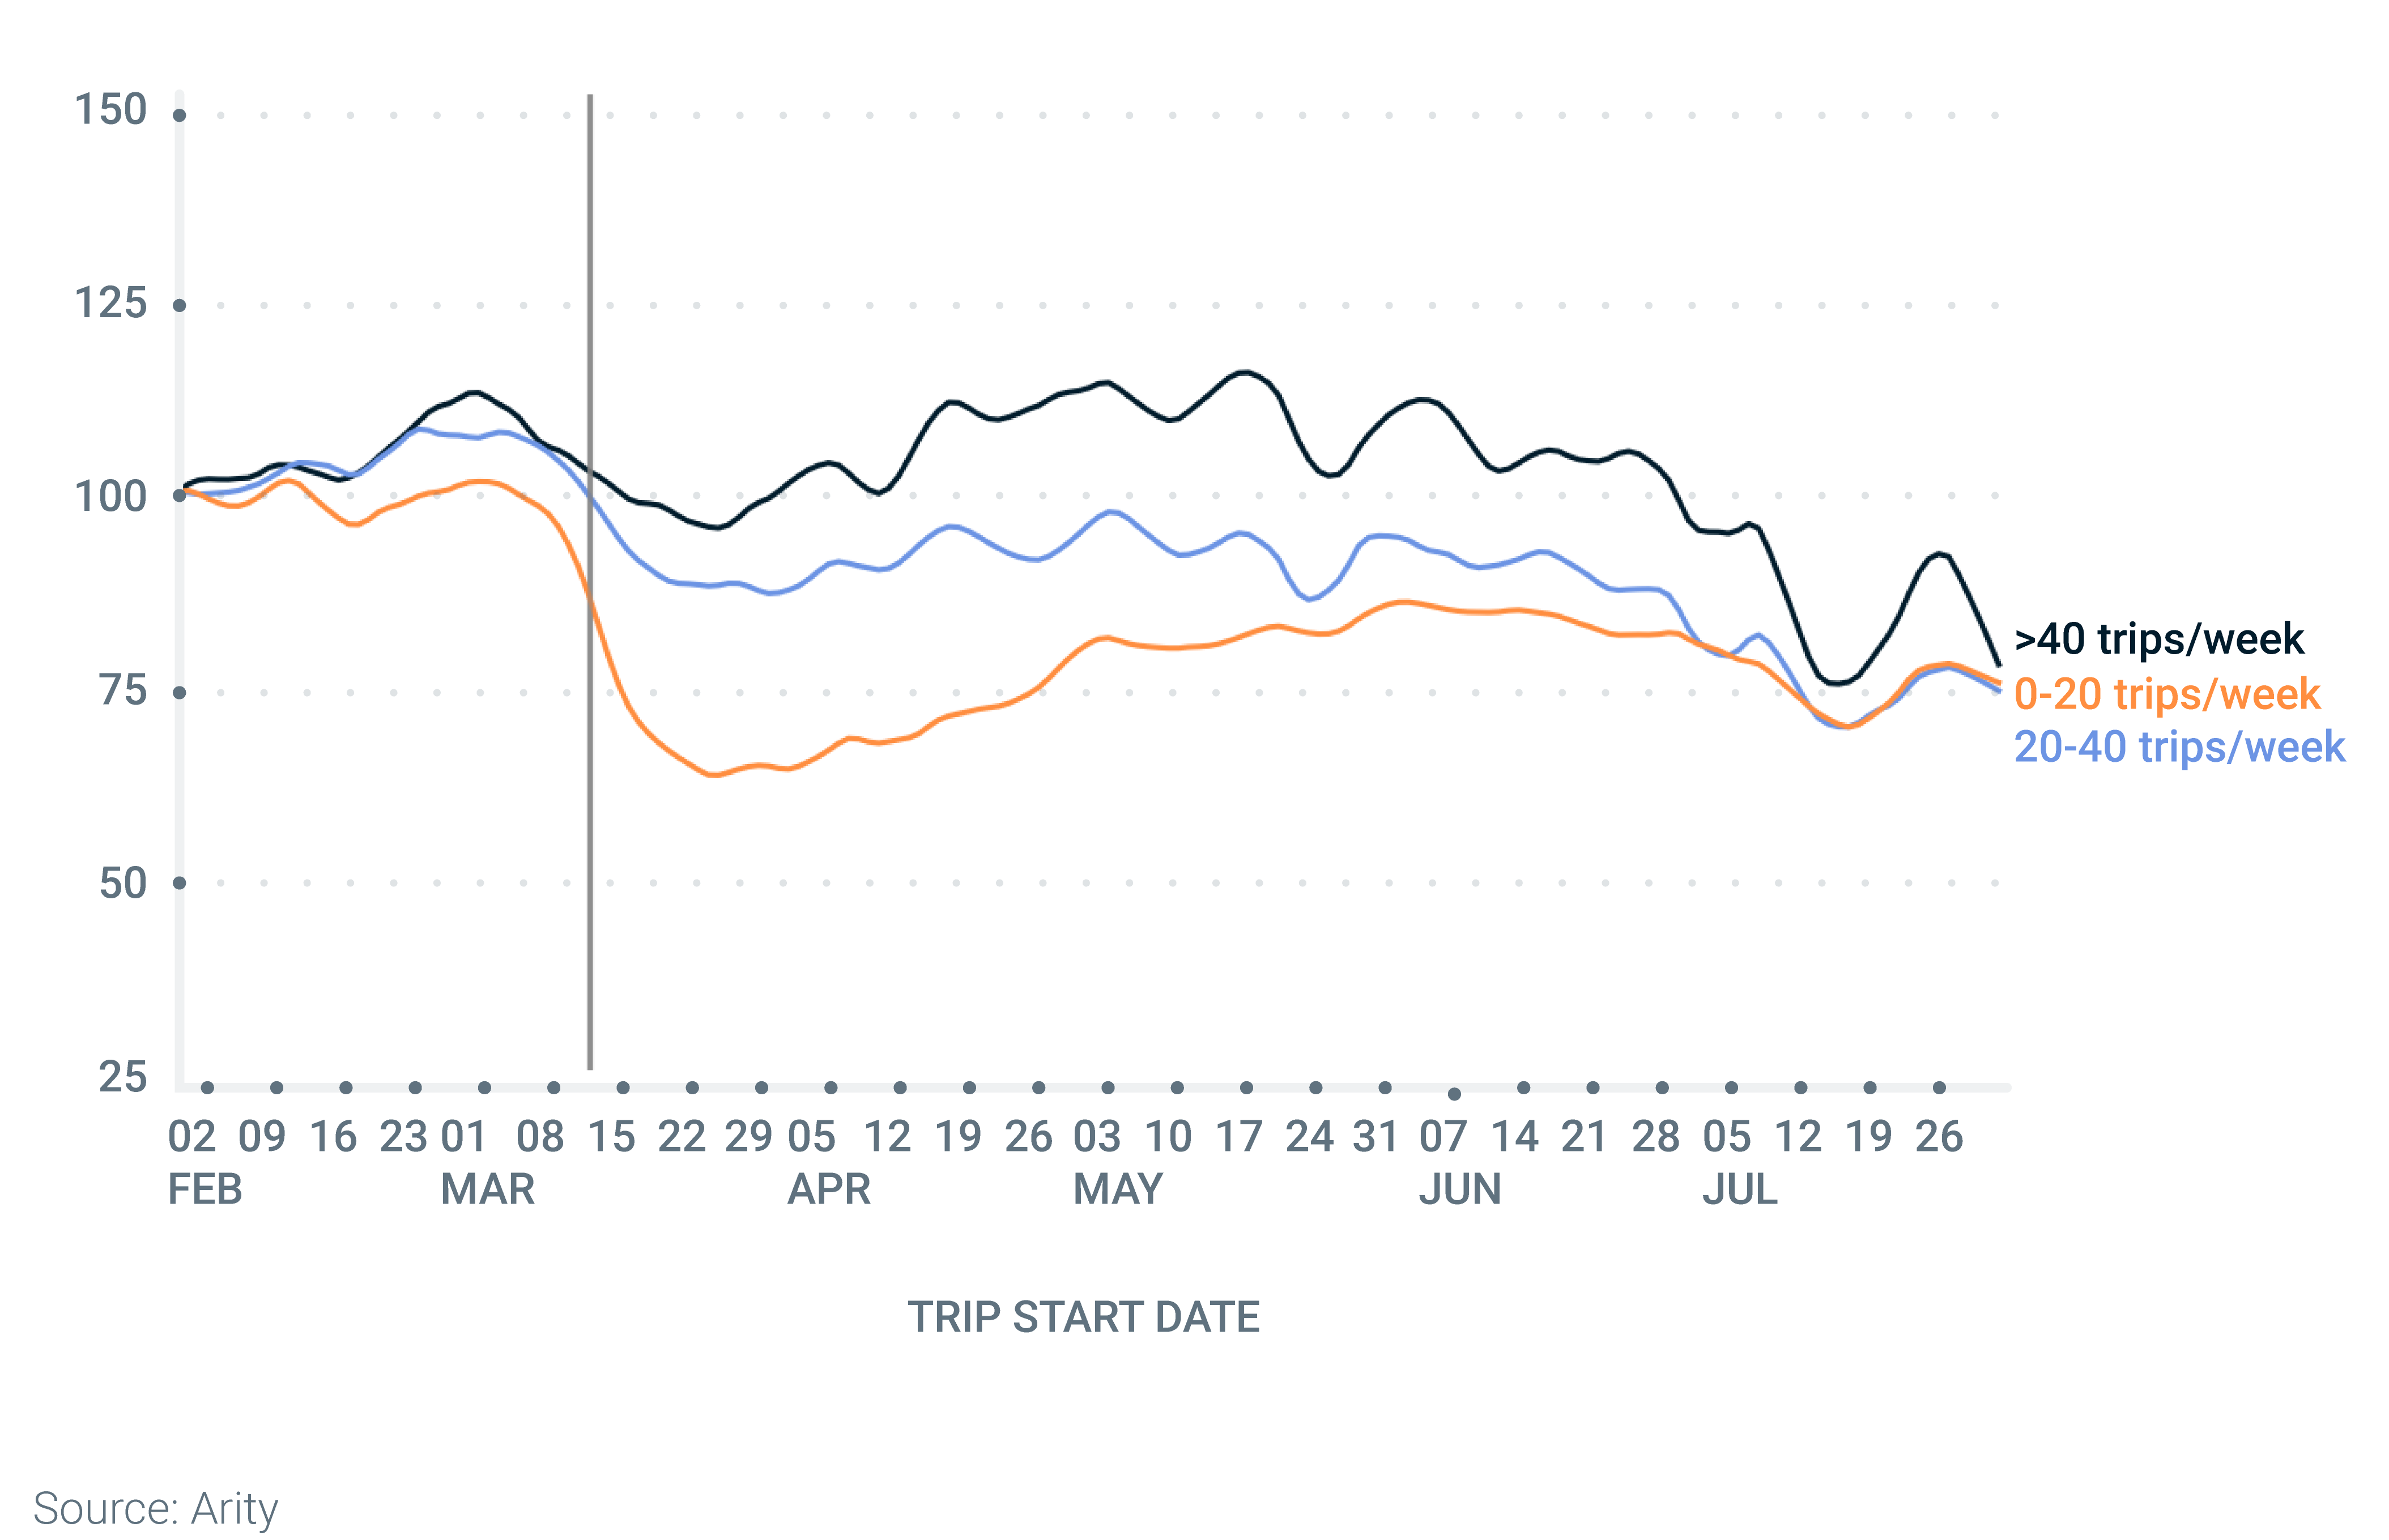 Line graph showing the difference in trips per week